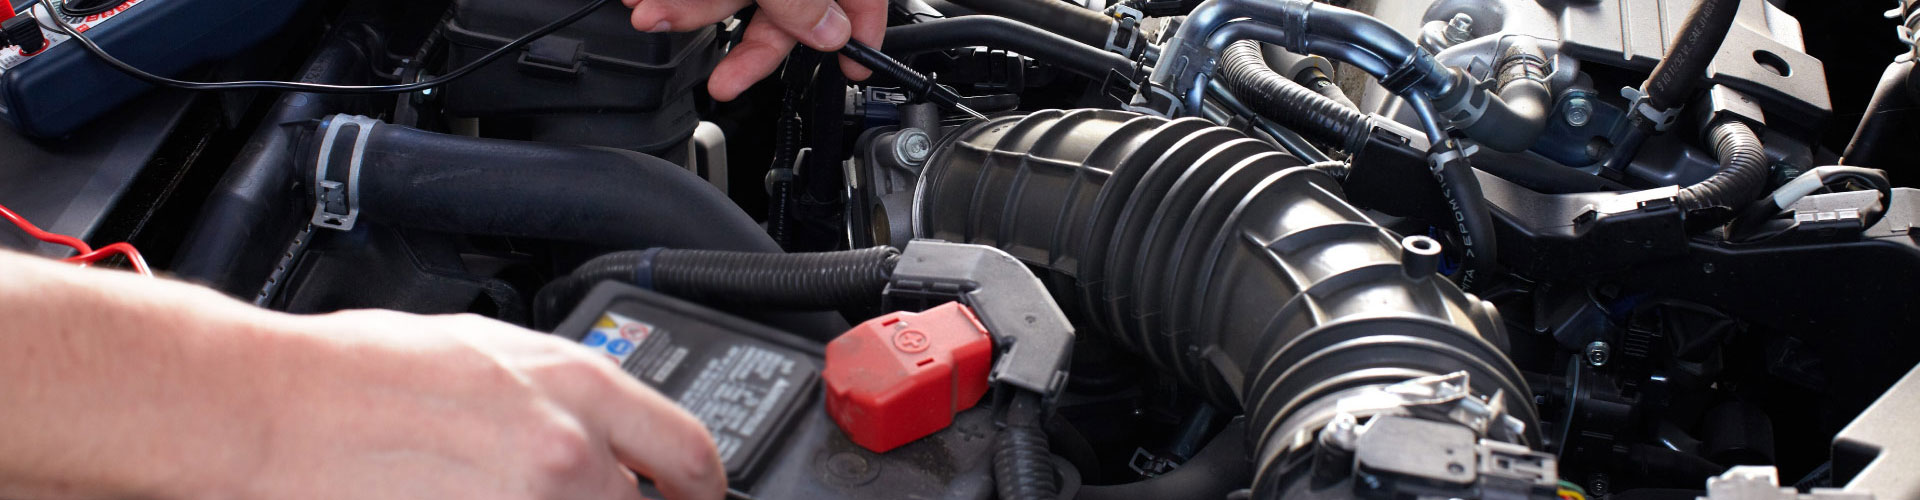 An auto mechanic checking a car engine